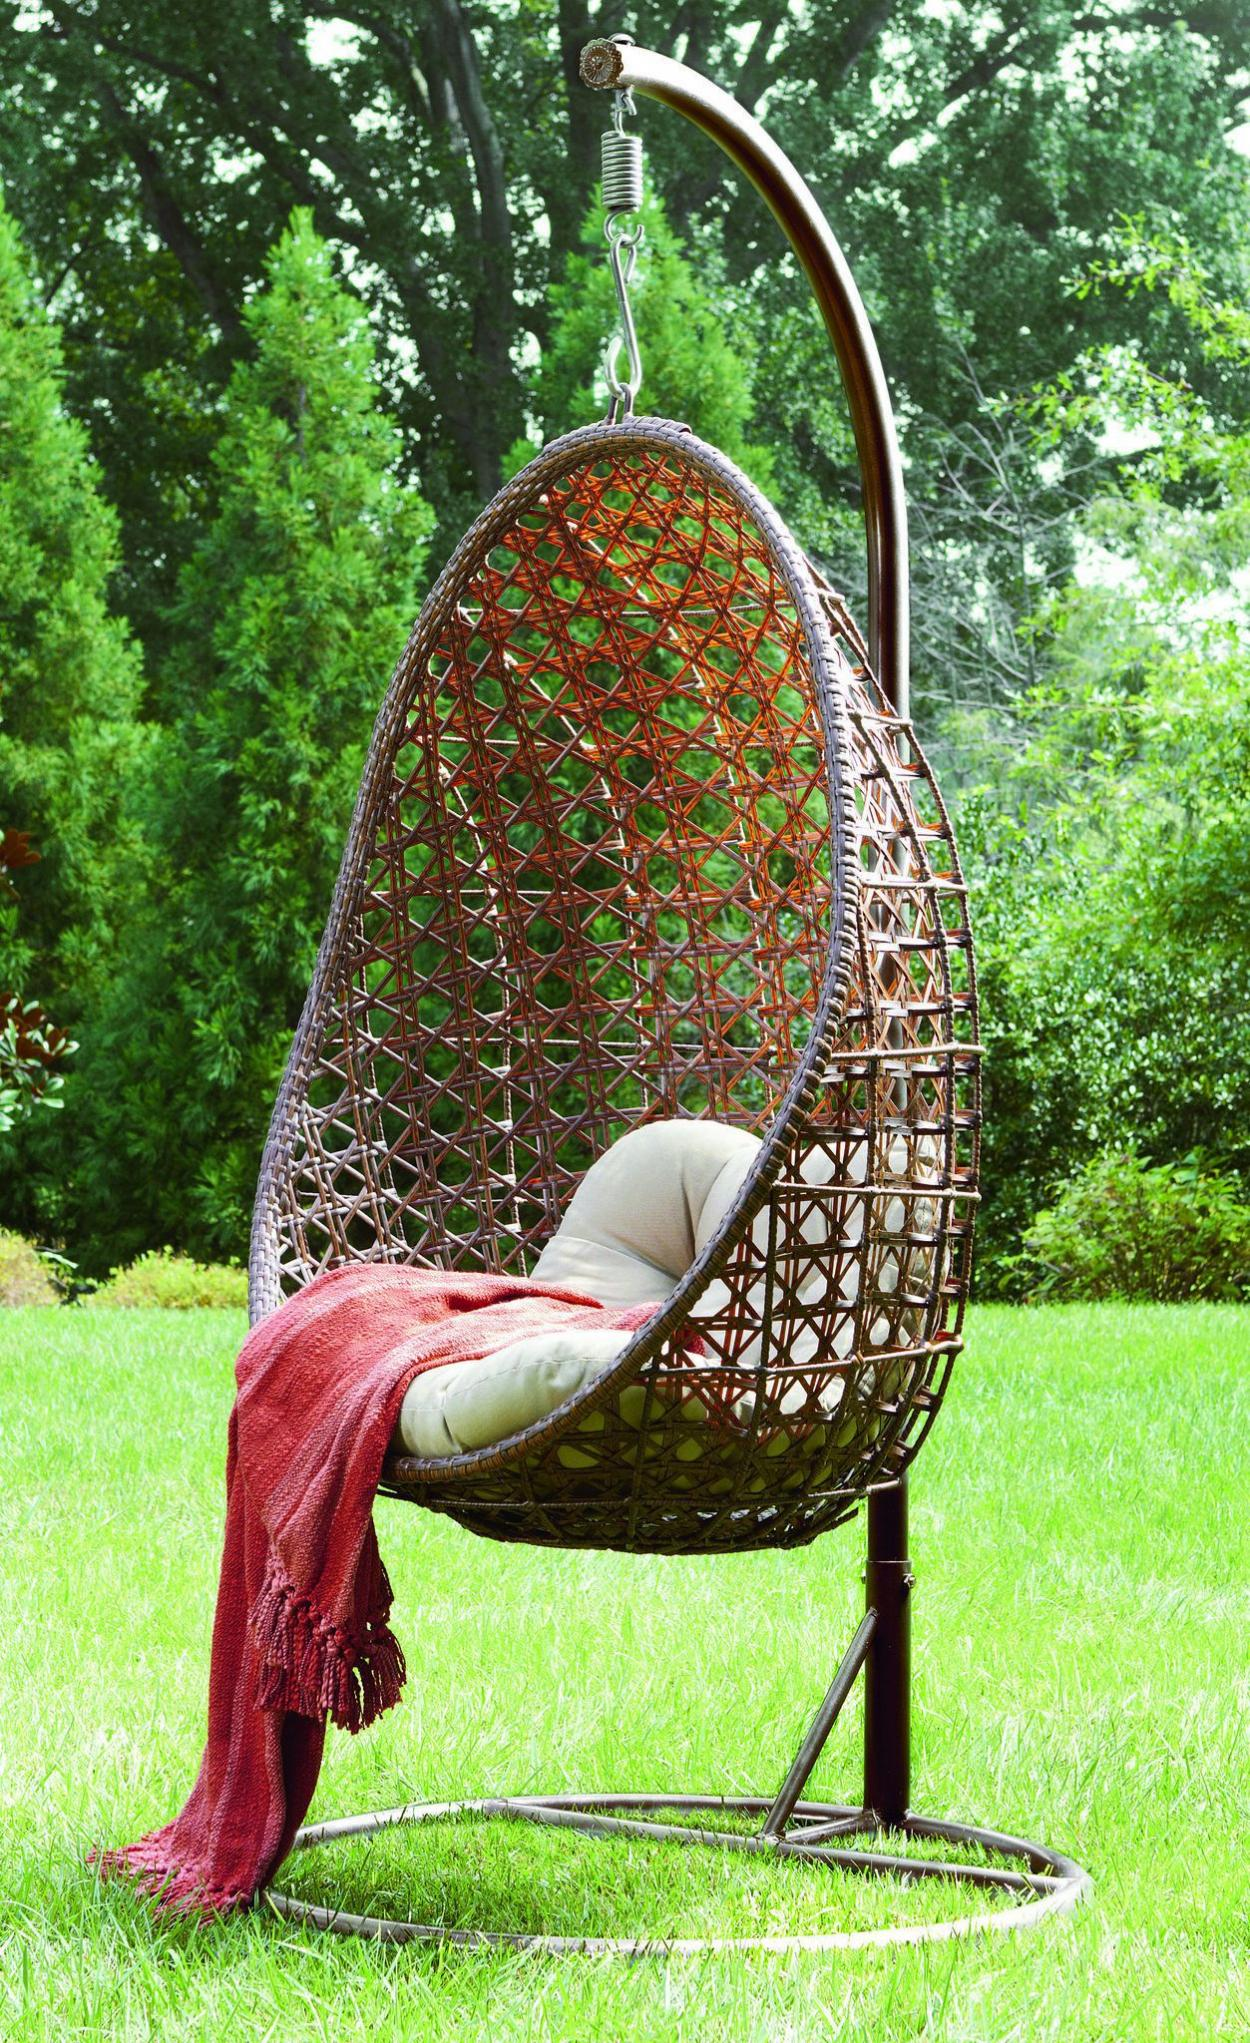 Outdoor Hanging Egg Chair Make The Days Feel Comfortable And Relaxed With Adorable